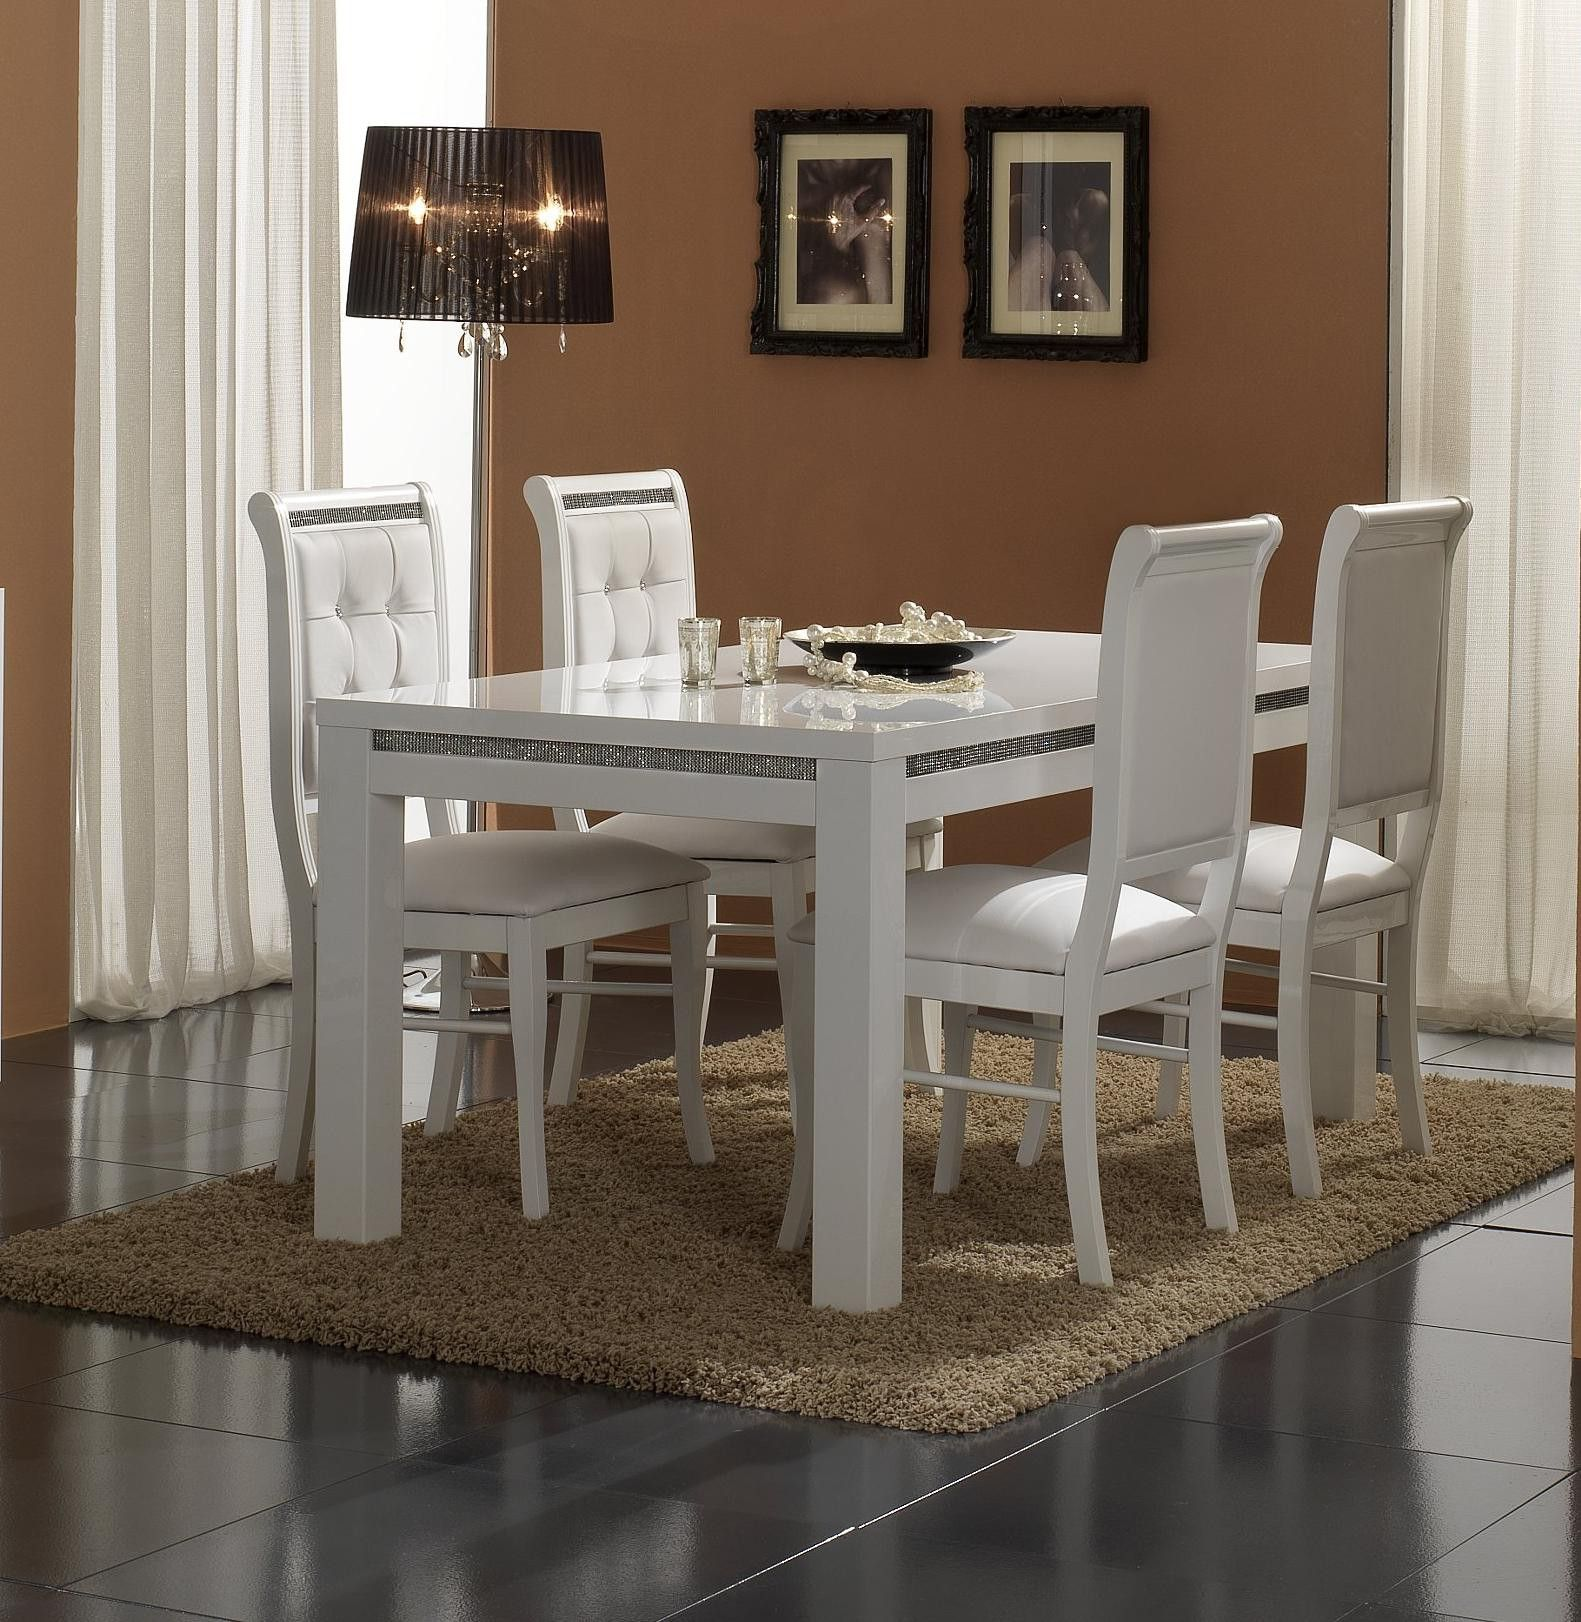 Redoutable Chaise Blanche De Salle A Manger White Dining Room Table Interior Design Dining Room Tiny Dining Rooms